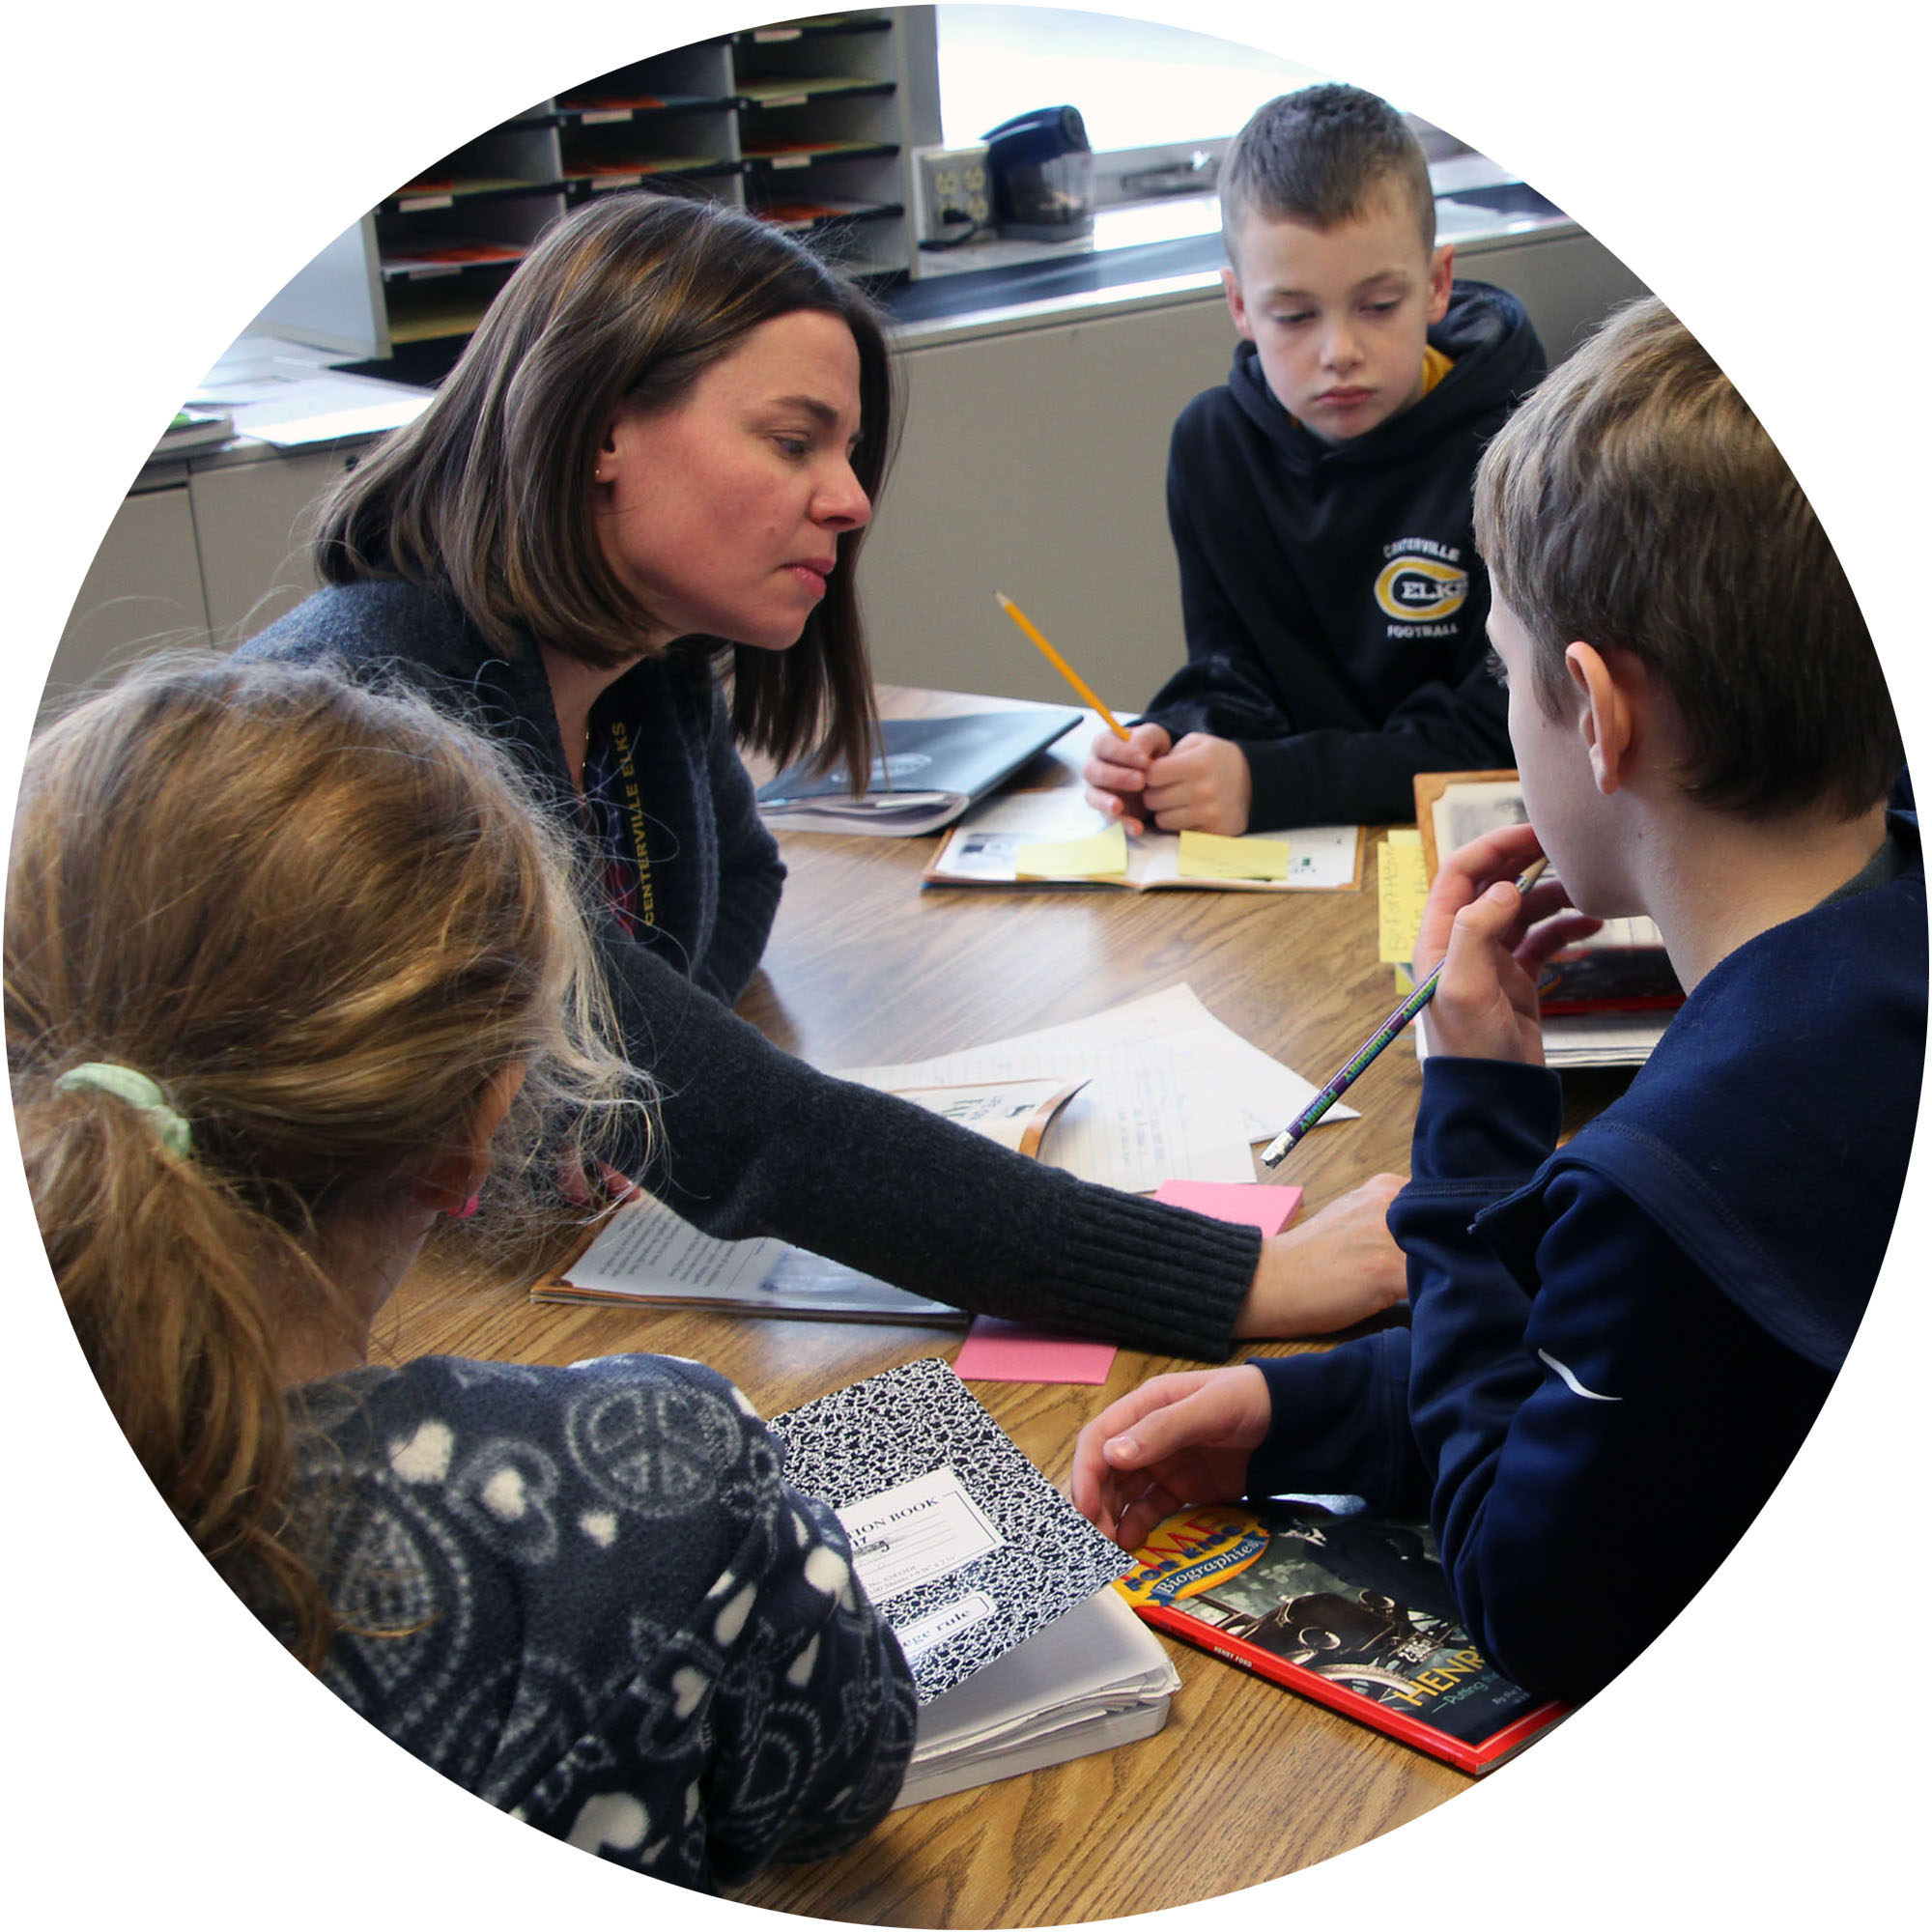 Image of teacher working with small group of students